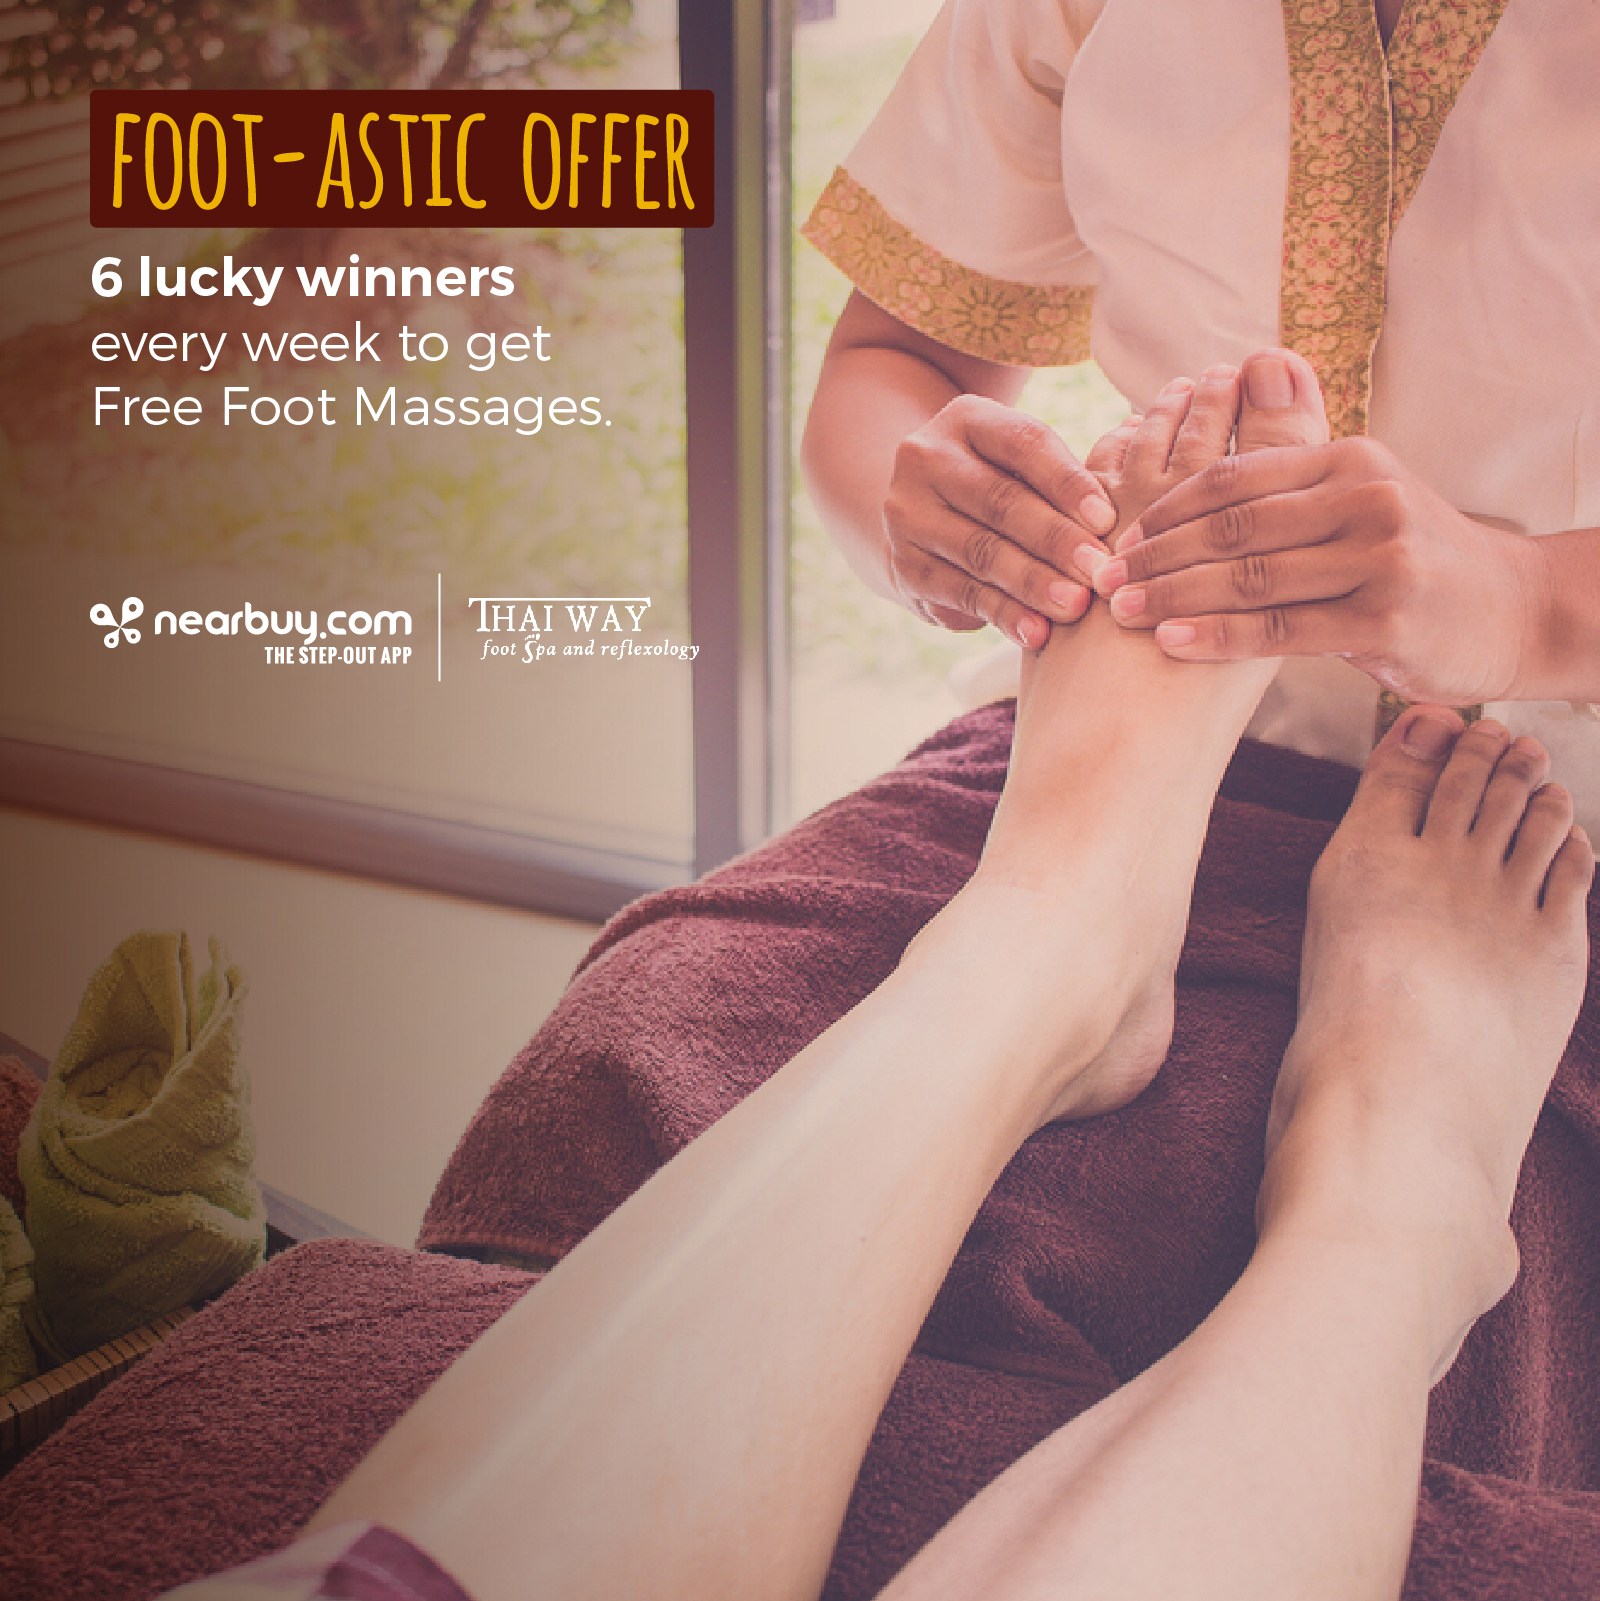 Winners - Free Foot Massages - Thaiway Foot Spa